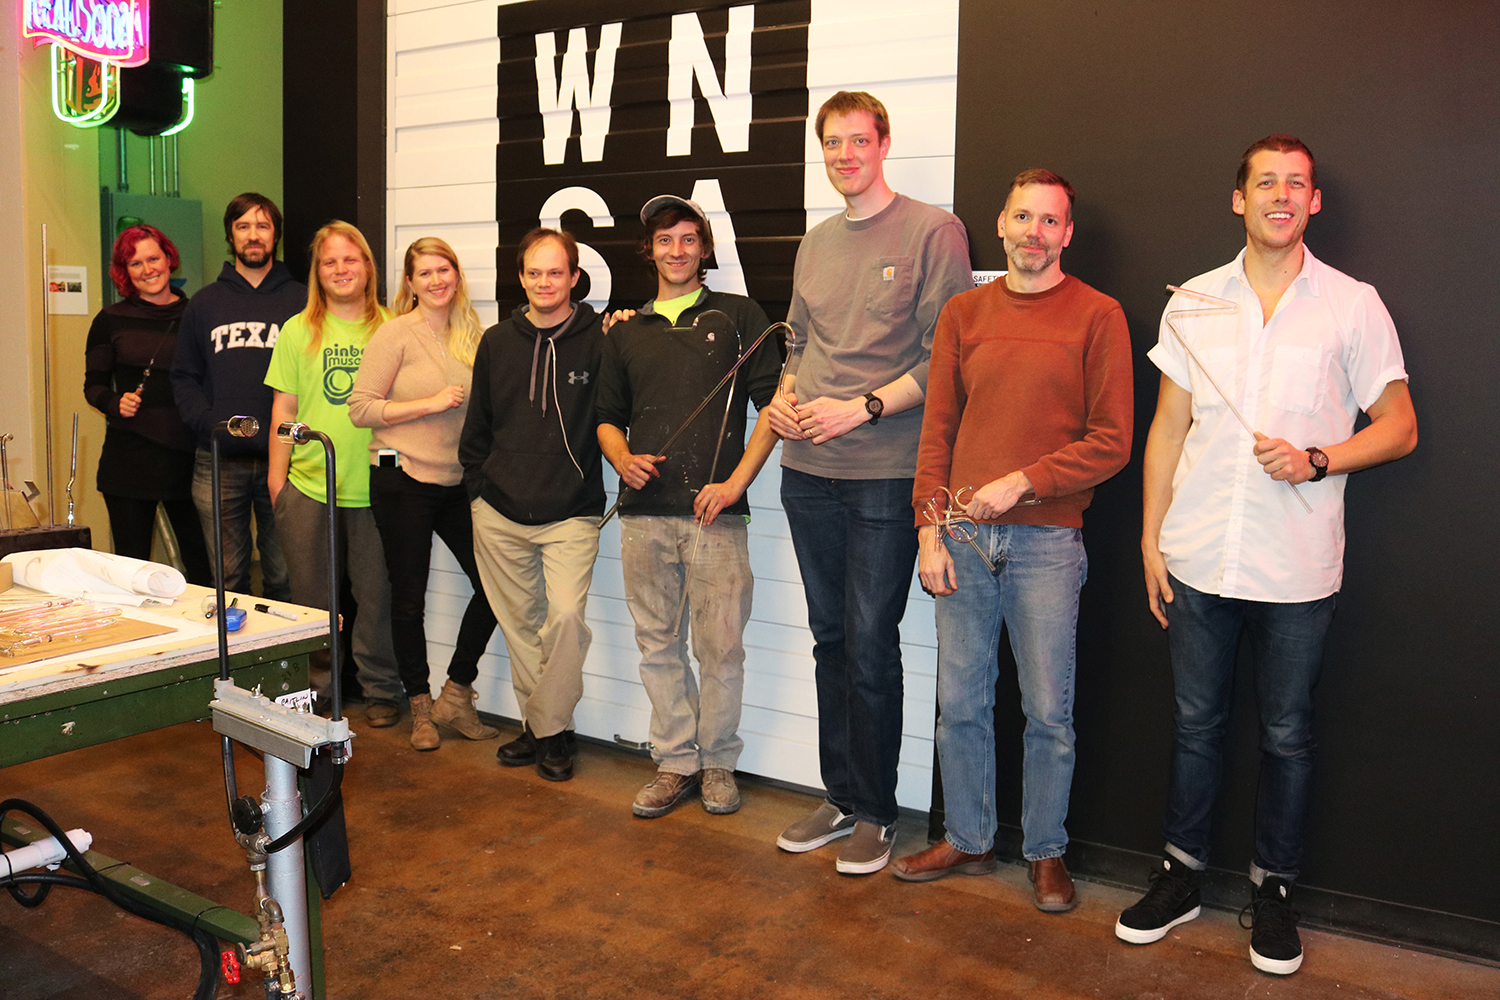 Tuesday Introduction class, Fall Quarter 2018. Image  ©  2018 Western Neon School of Art.